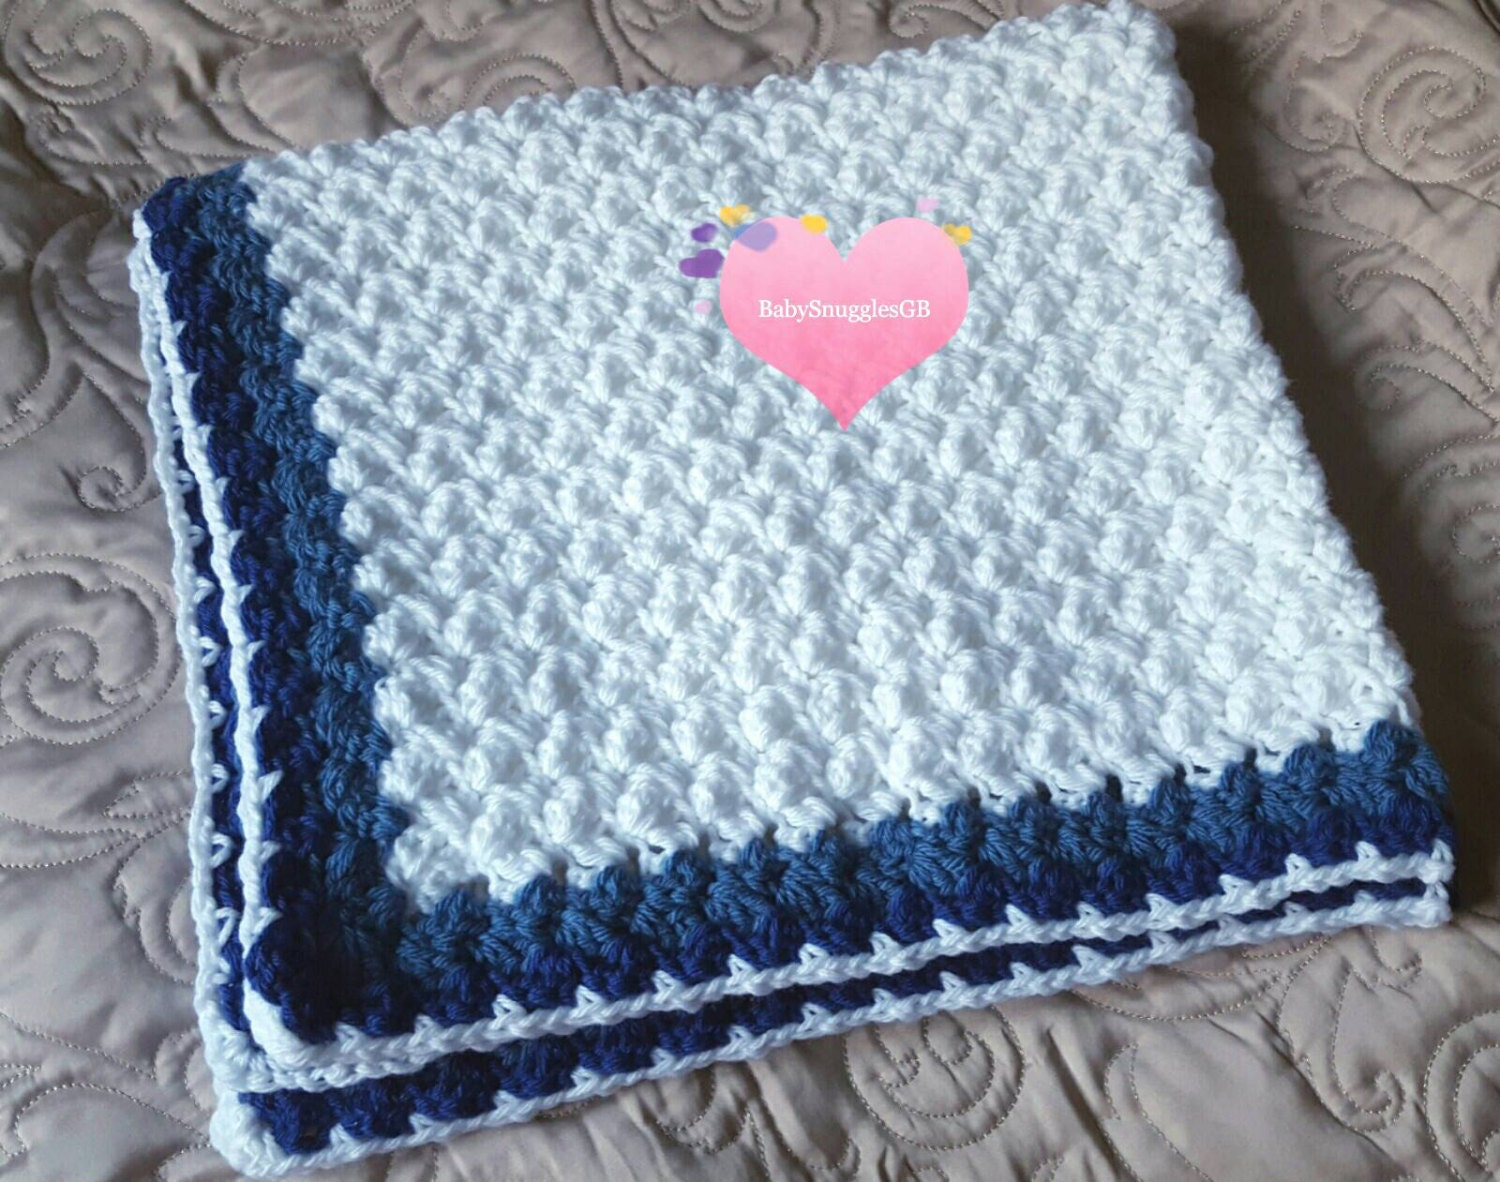 Marshmallow Crochet Baby Blanket Pattern : Crocheted marshmallow blanket in white and blue.